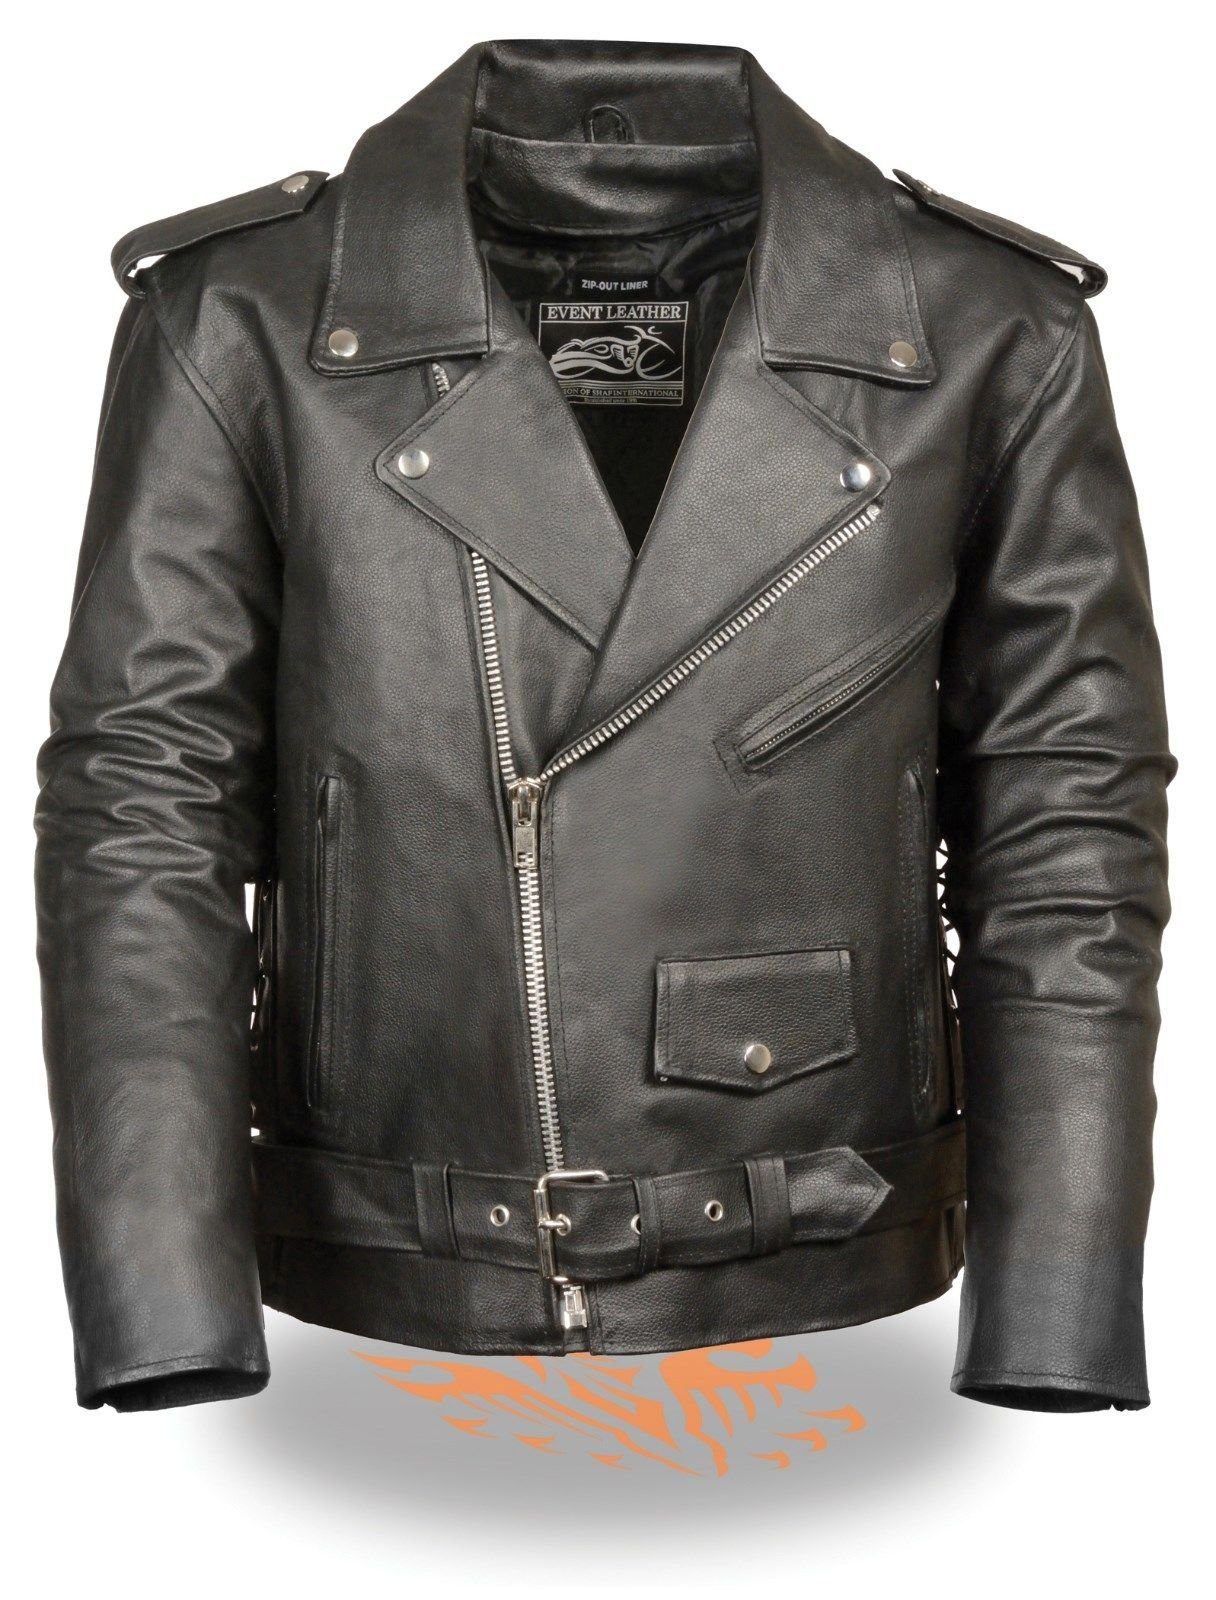 MEN'S MOTORCYCLE RIDERS CLASSIC M/C JACKET POLICE TERMINATOR STYLE W/SIDE LACE ( EL5411 3X Regular)